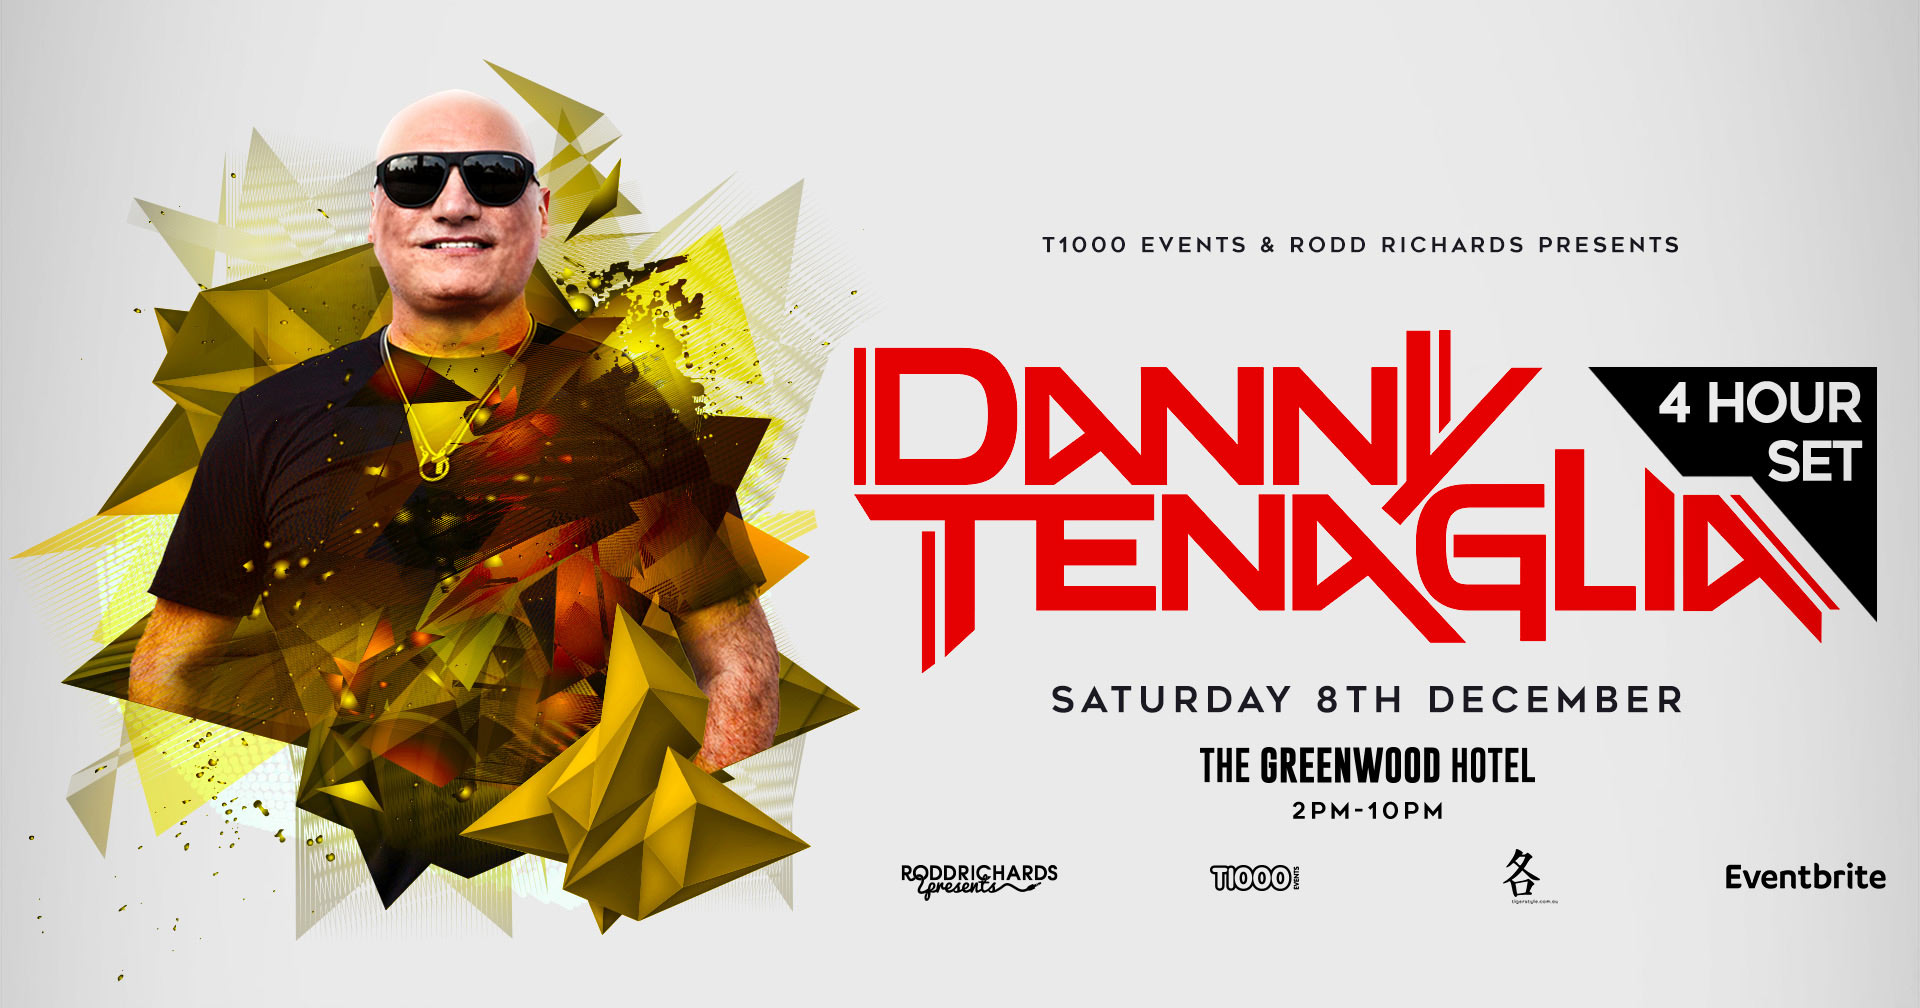 DANNY TENAGLIA - THE GREENWOOD, SYDNEY - T1000 EventsT1000